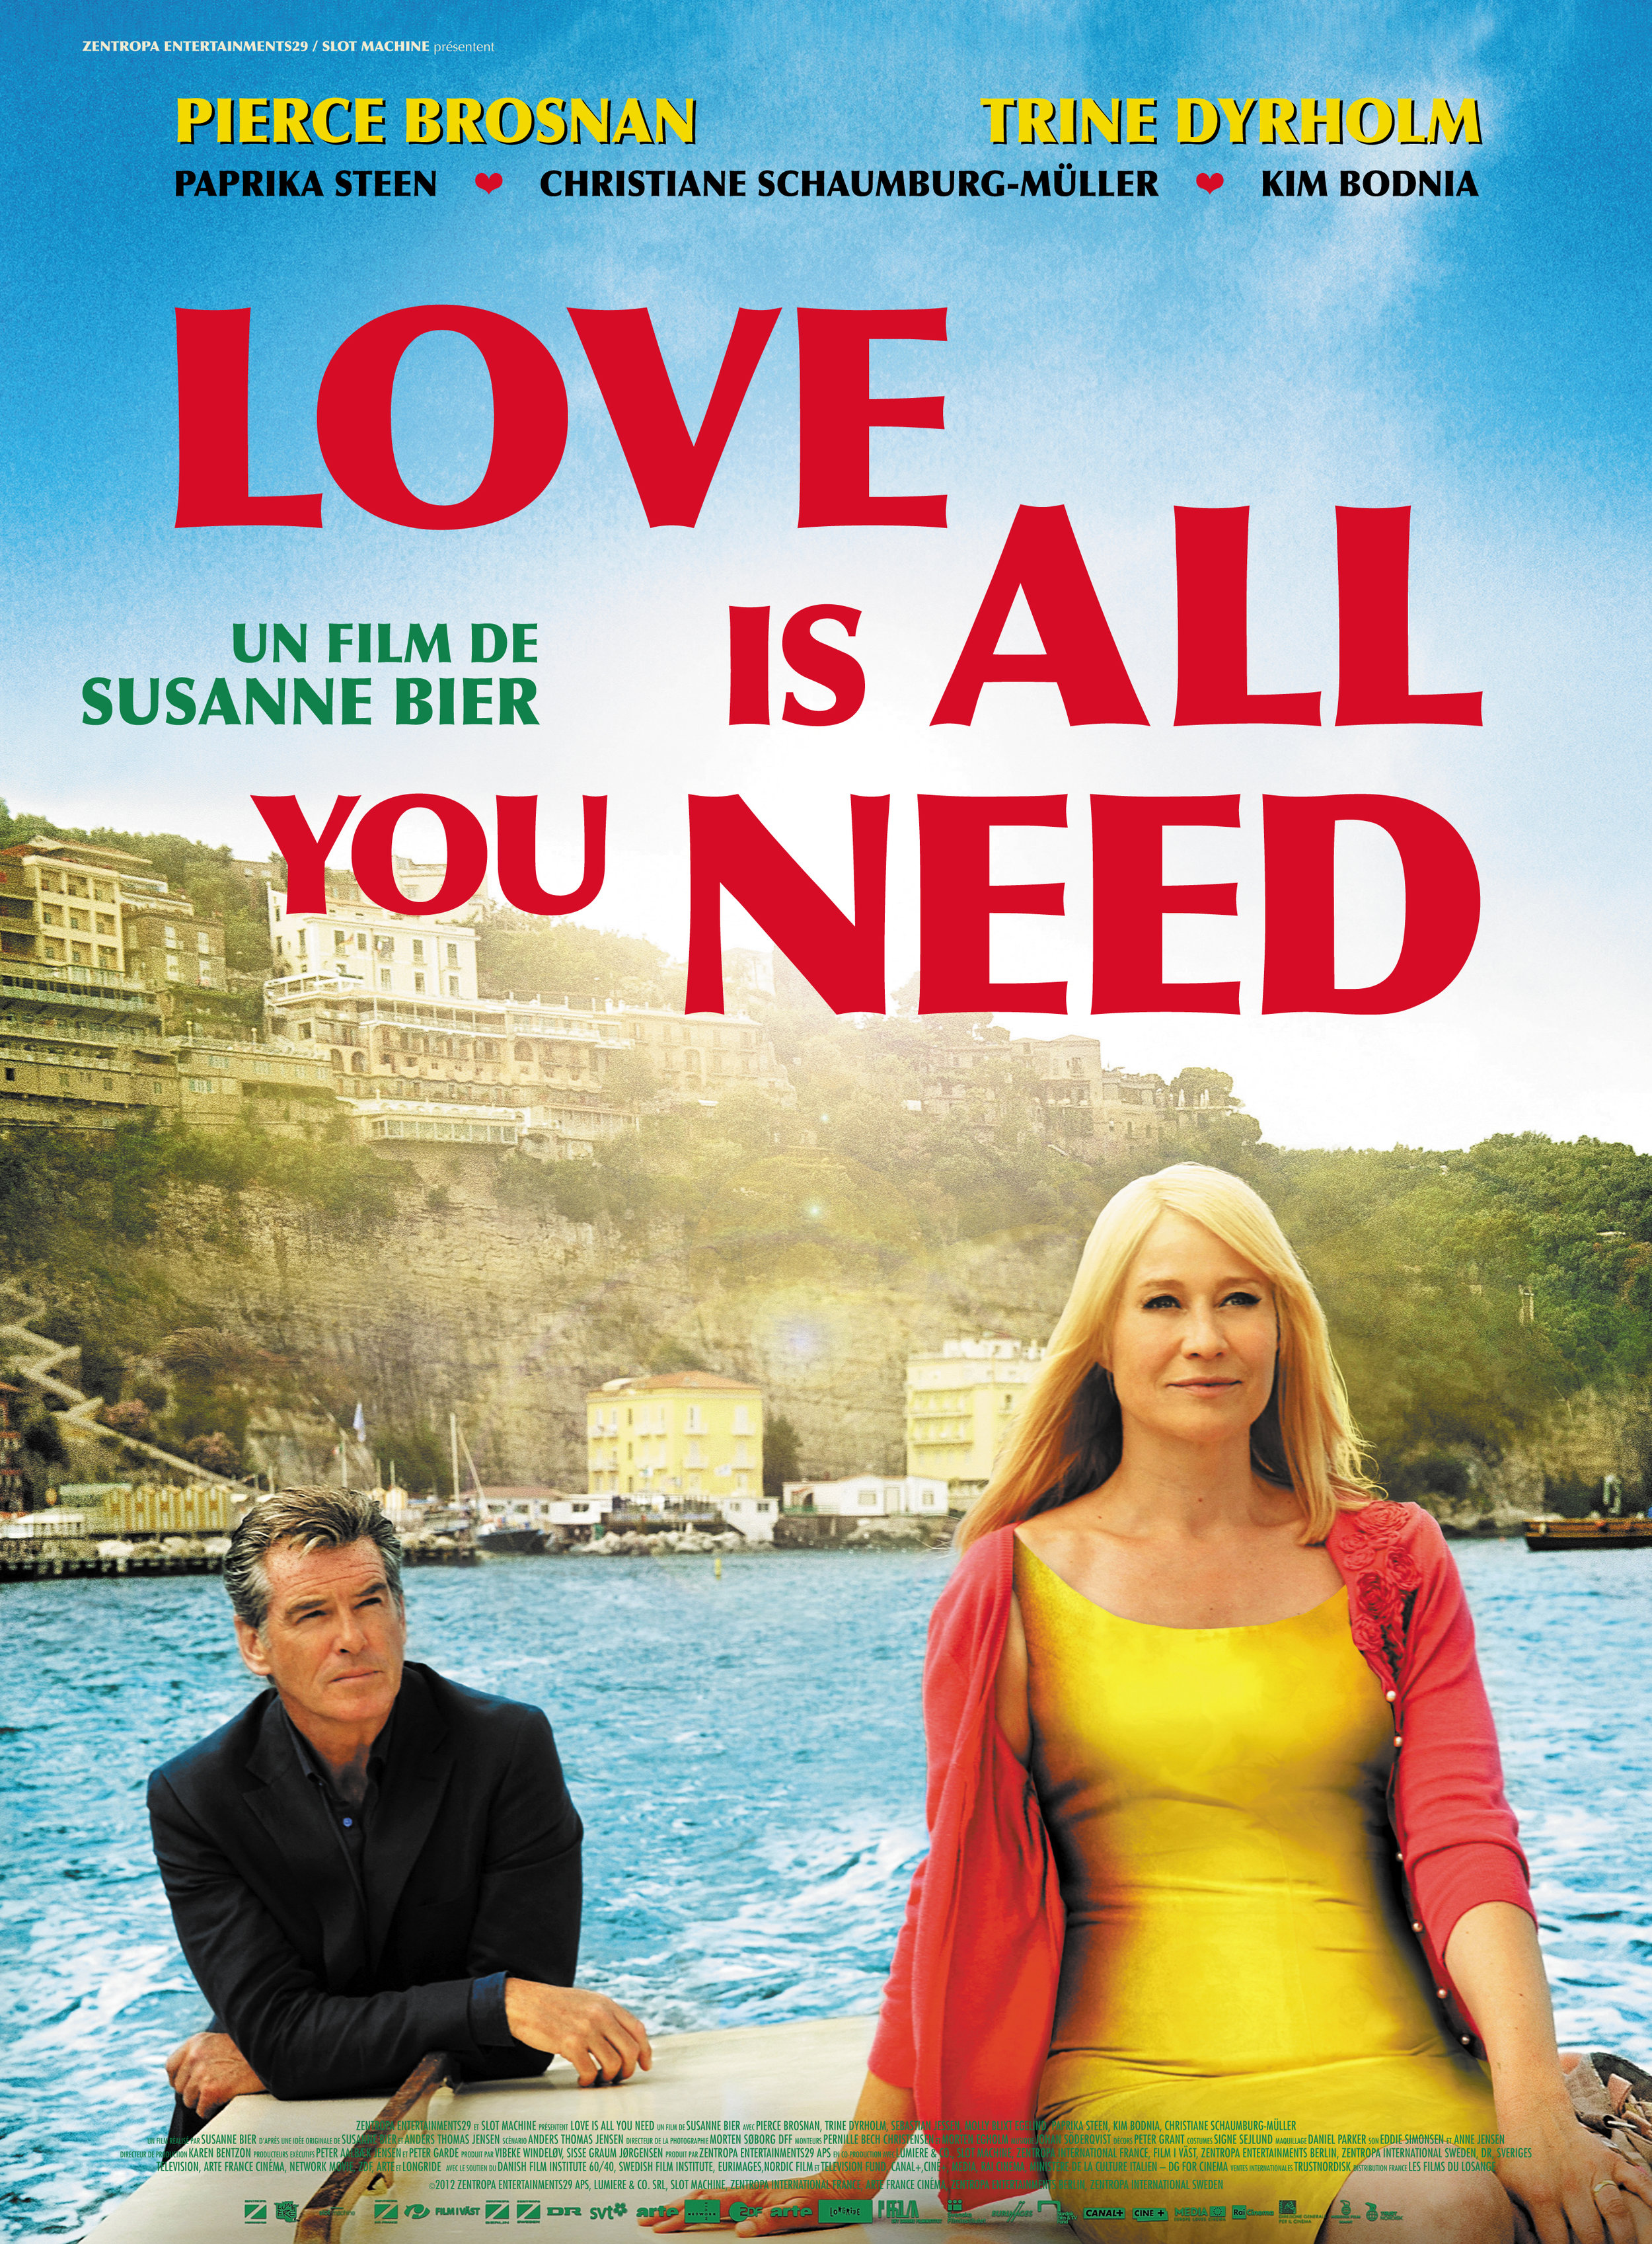 love is all you need.jpg